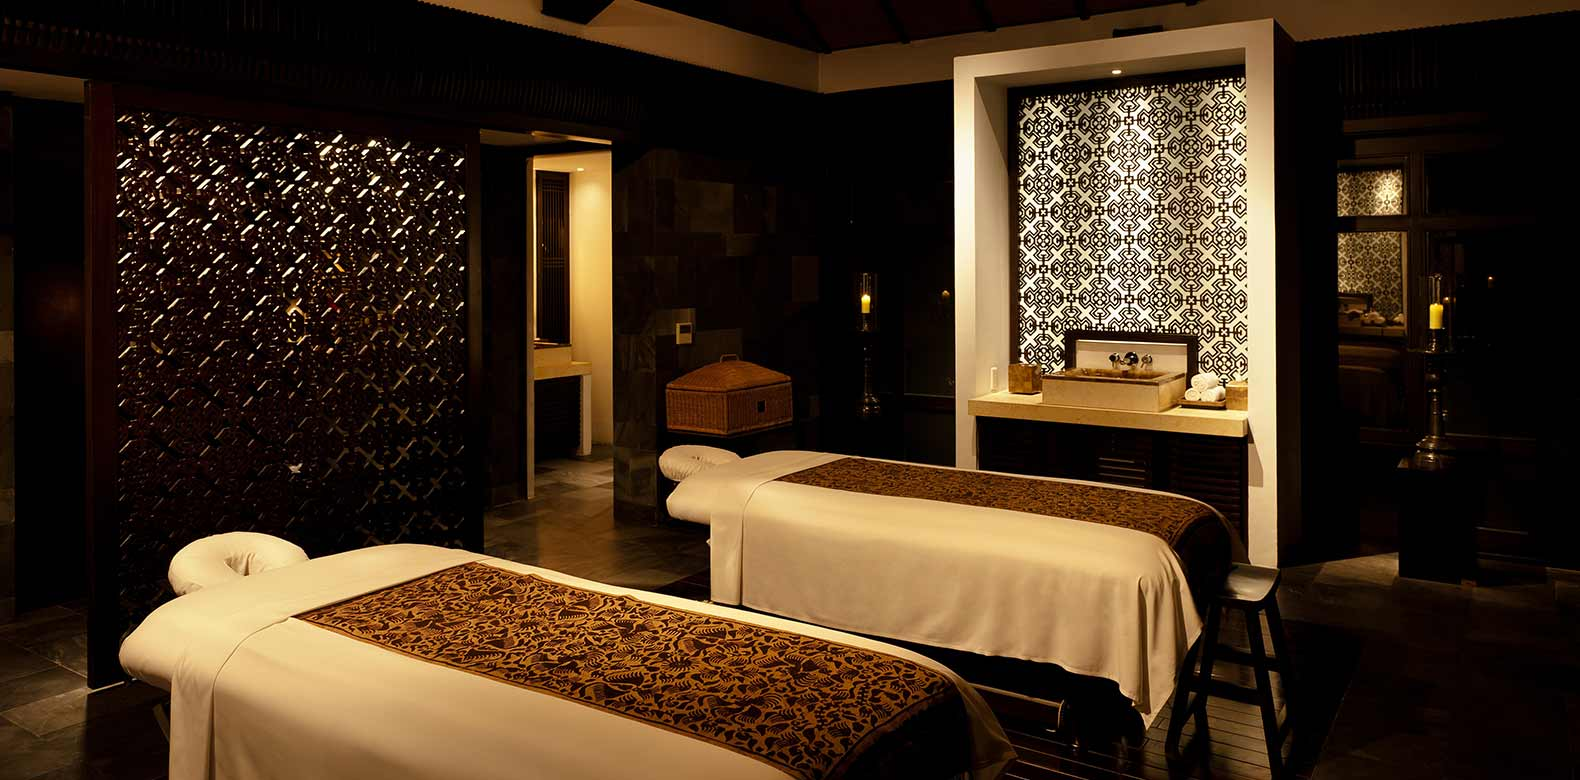 Most luxurious hotel spas in the world suitcase stories for Hotel luxury world